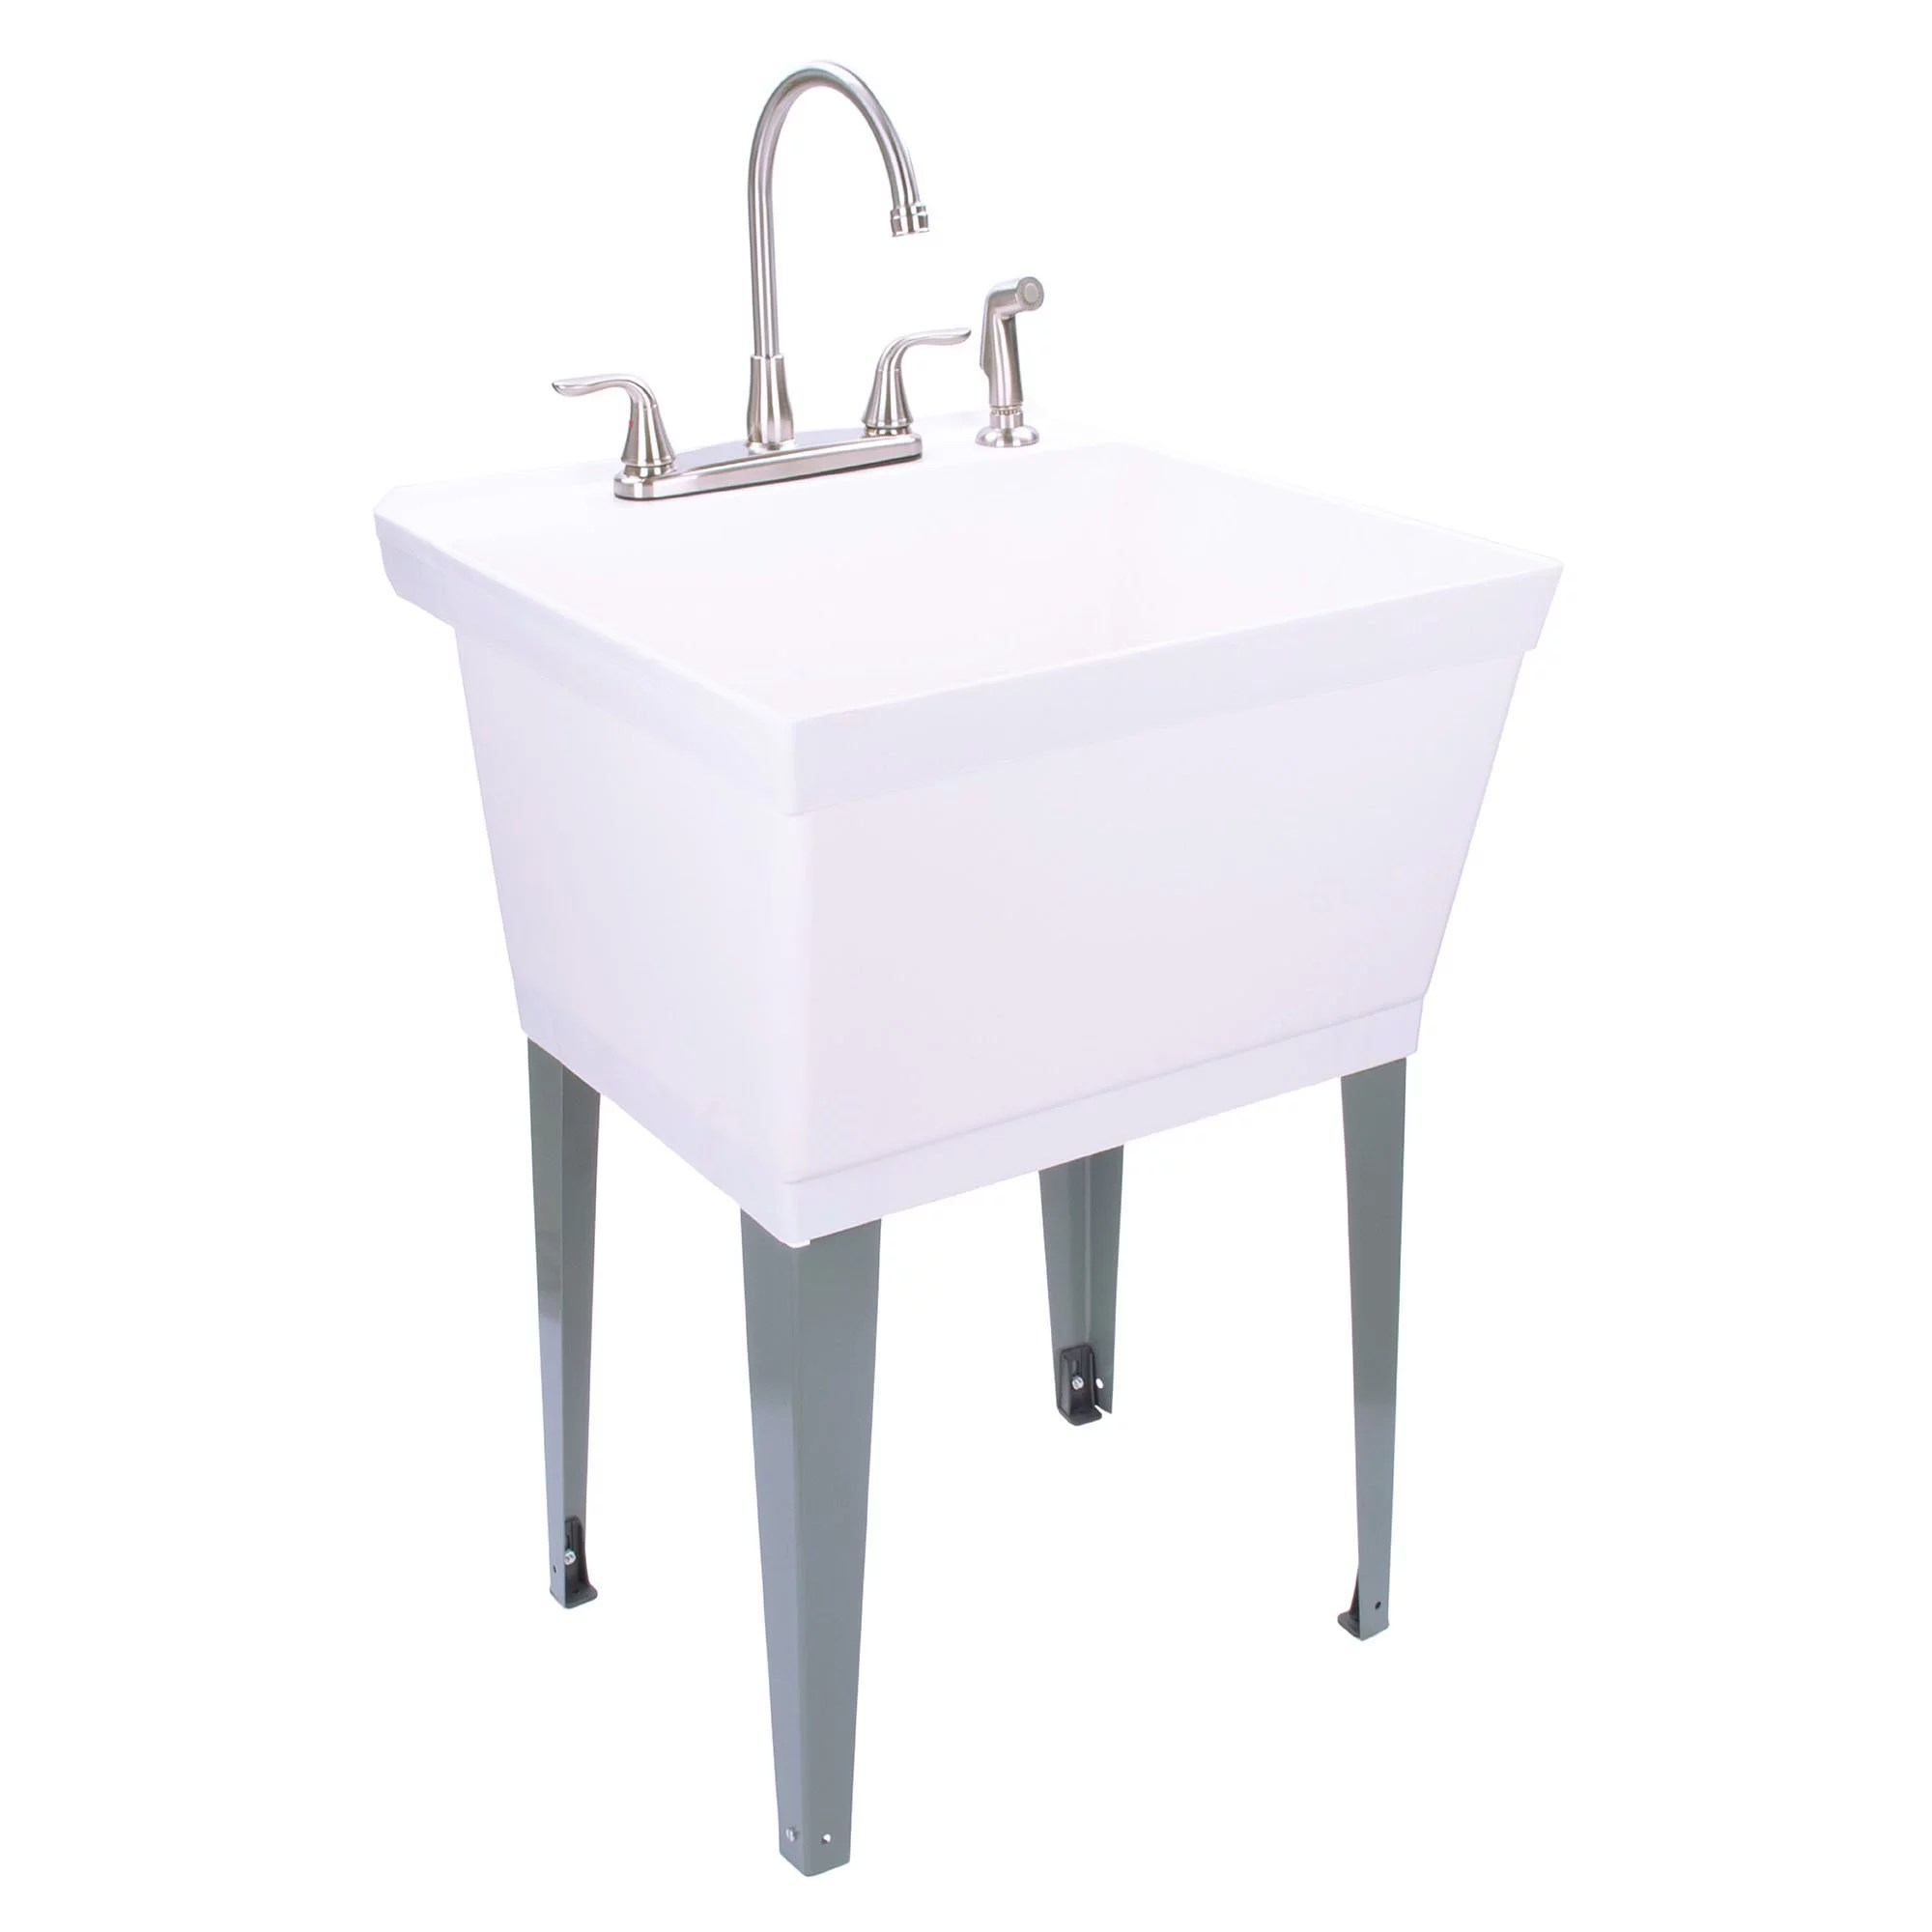 19 gallon utility sink with stainless steel high rise kitchen faucet 6501 walmart com